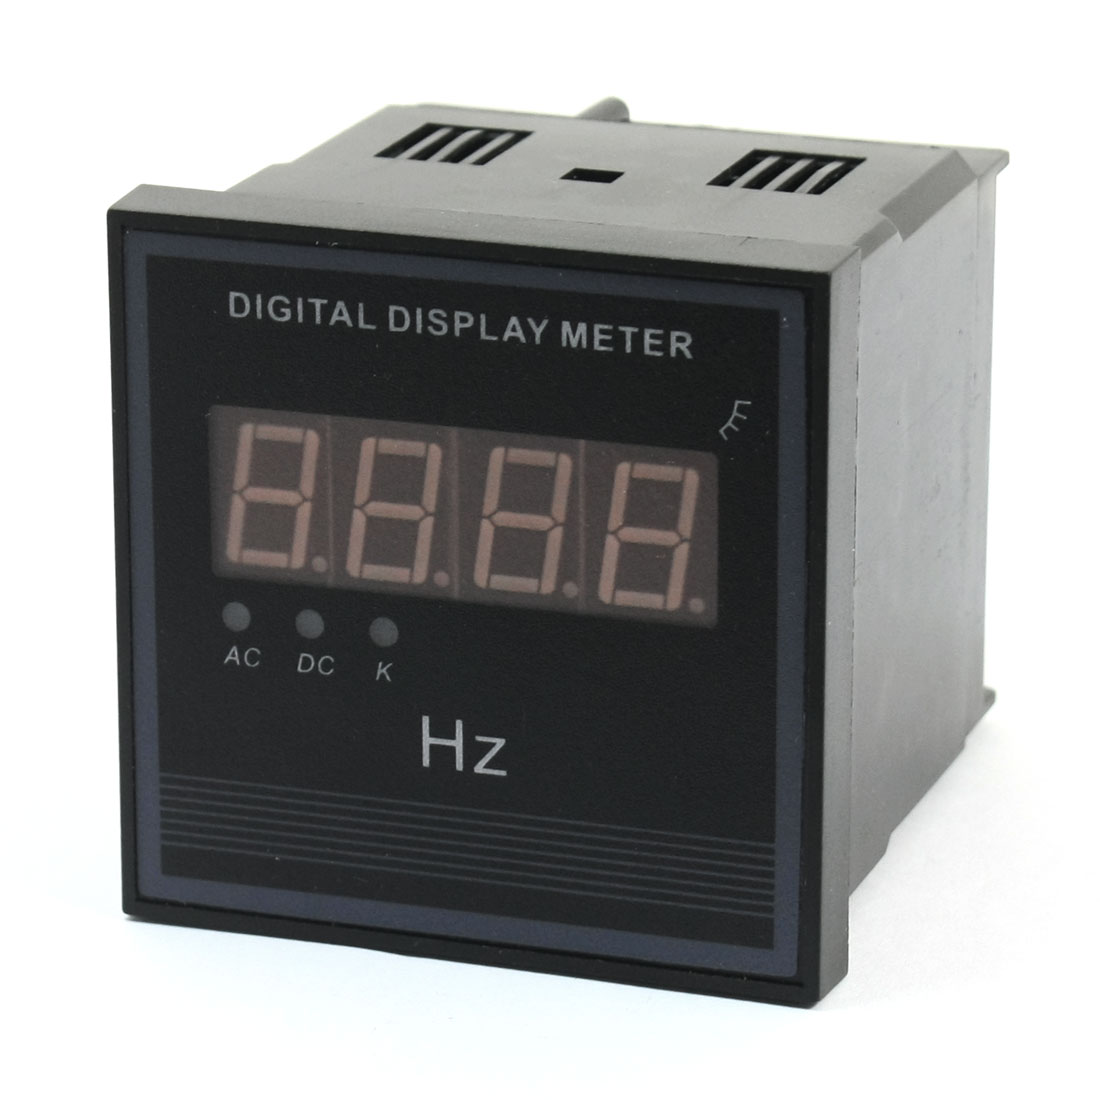 Square Shell 4 Digit Red LED Display Meter Tester Gauge Ammeter AC 220V